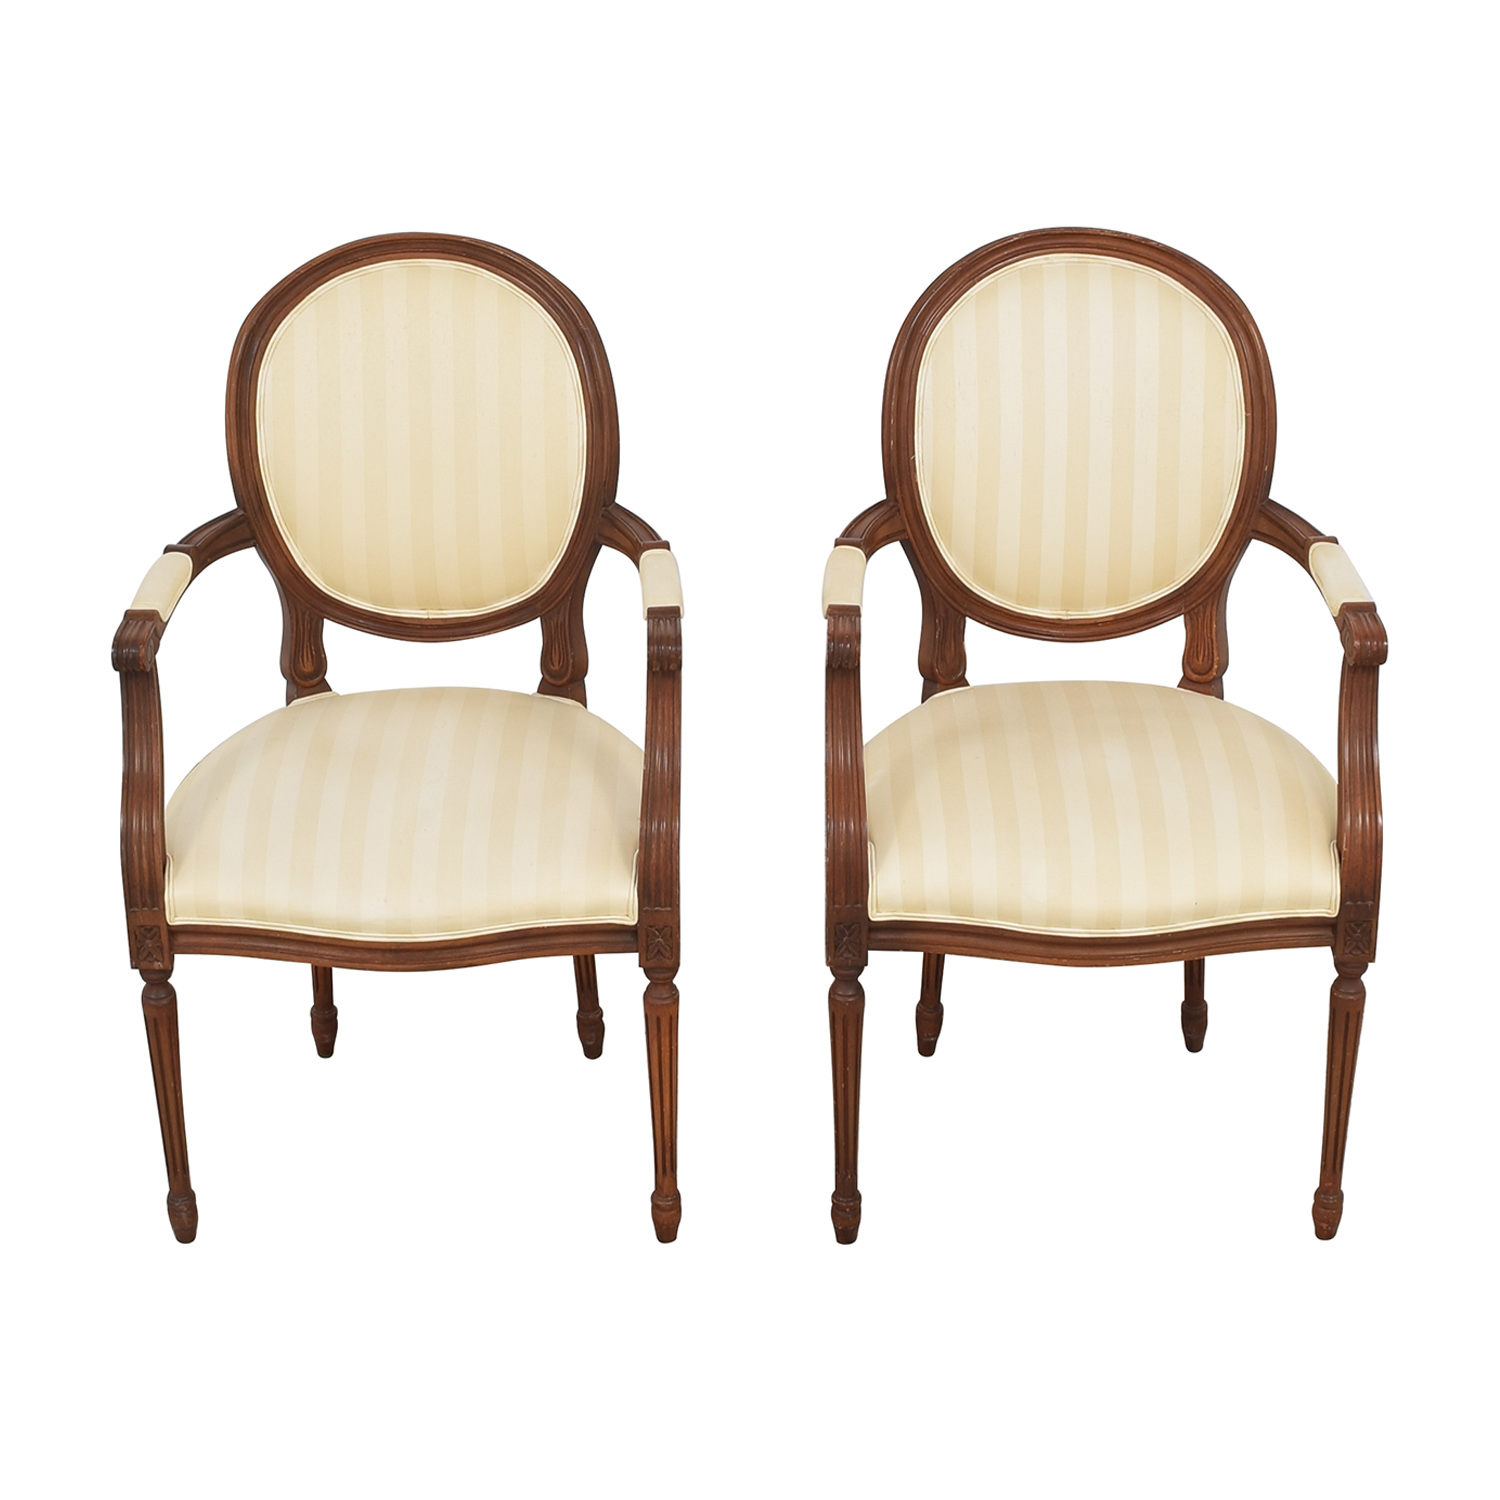 Louis XVI Style Dining Chairs / Dining Chairs